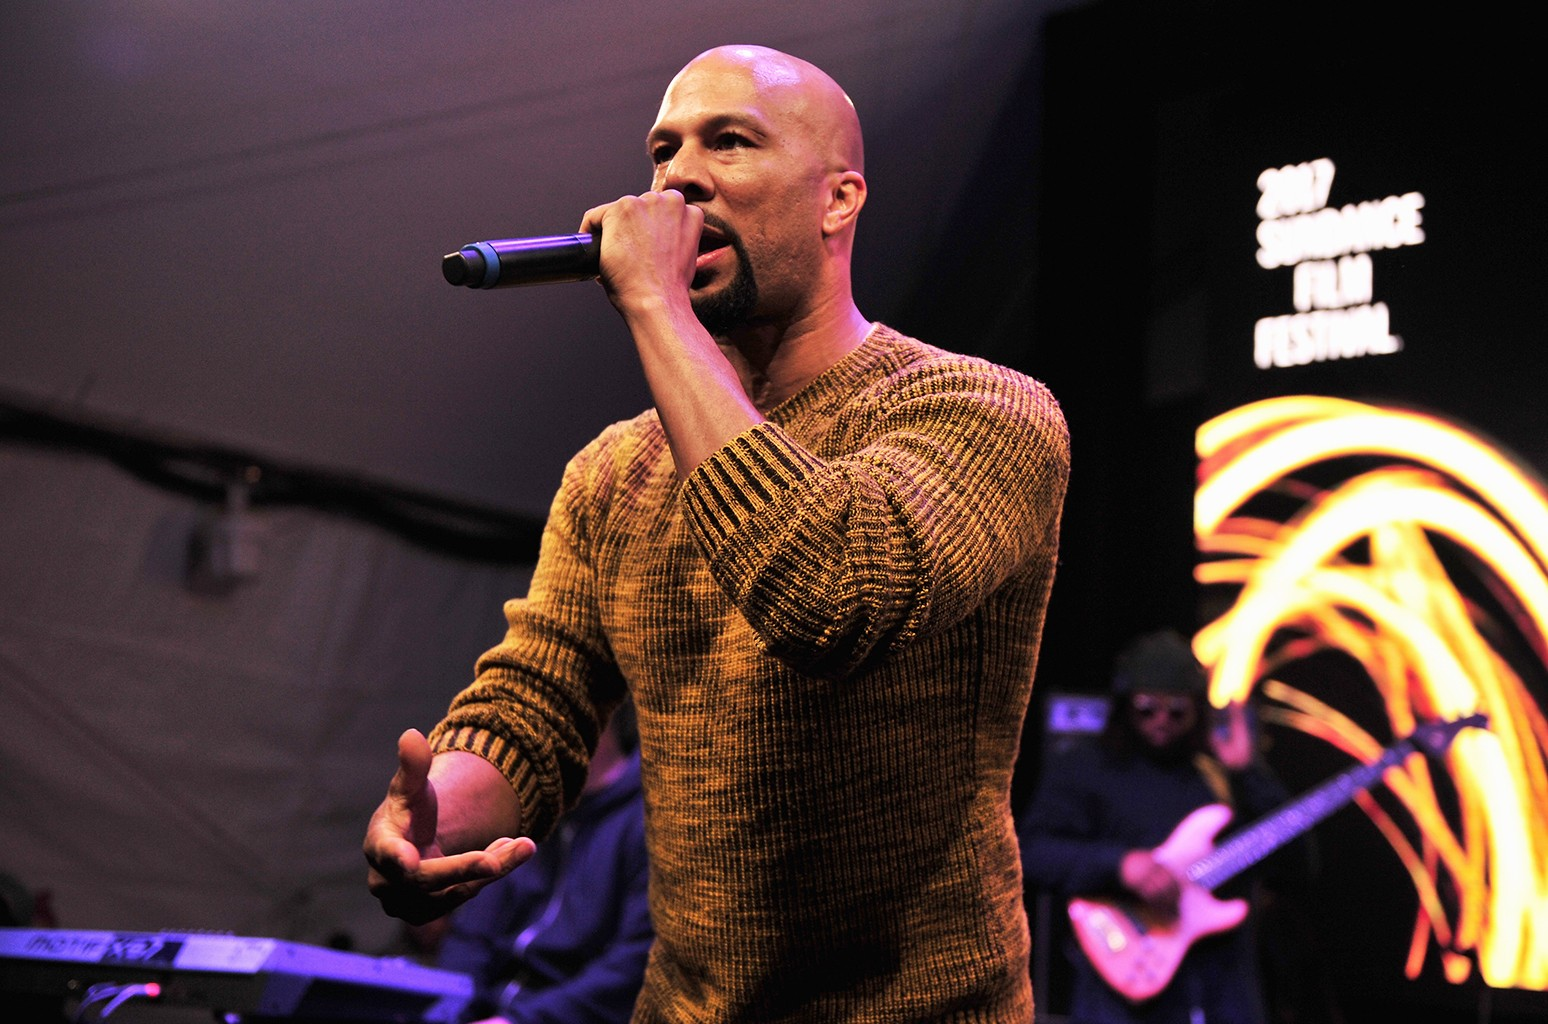 Common performs on Jan. 21, 2017.